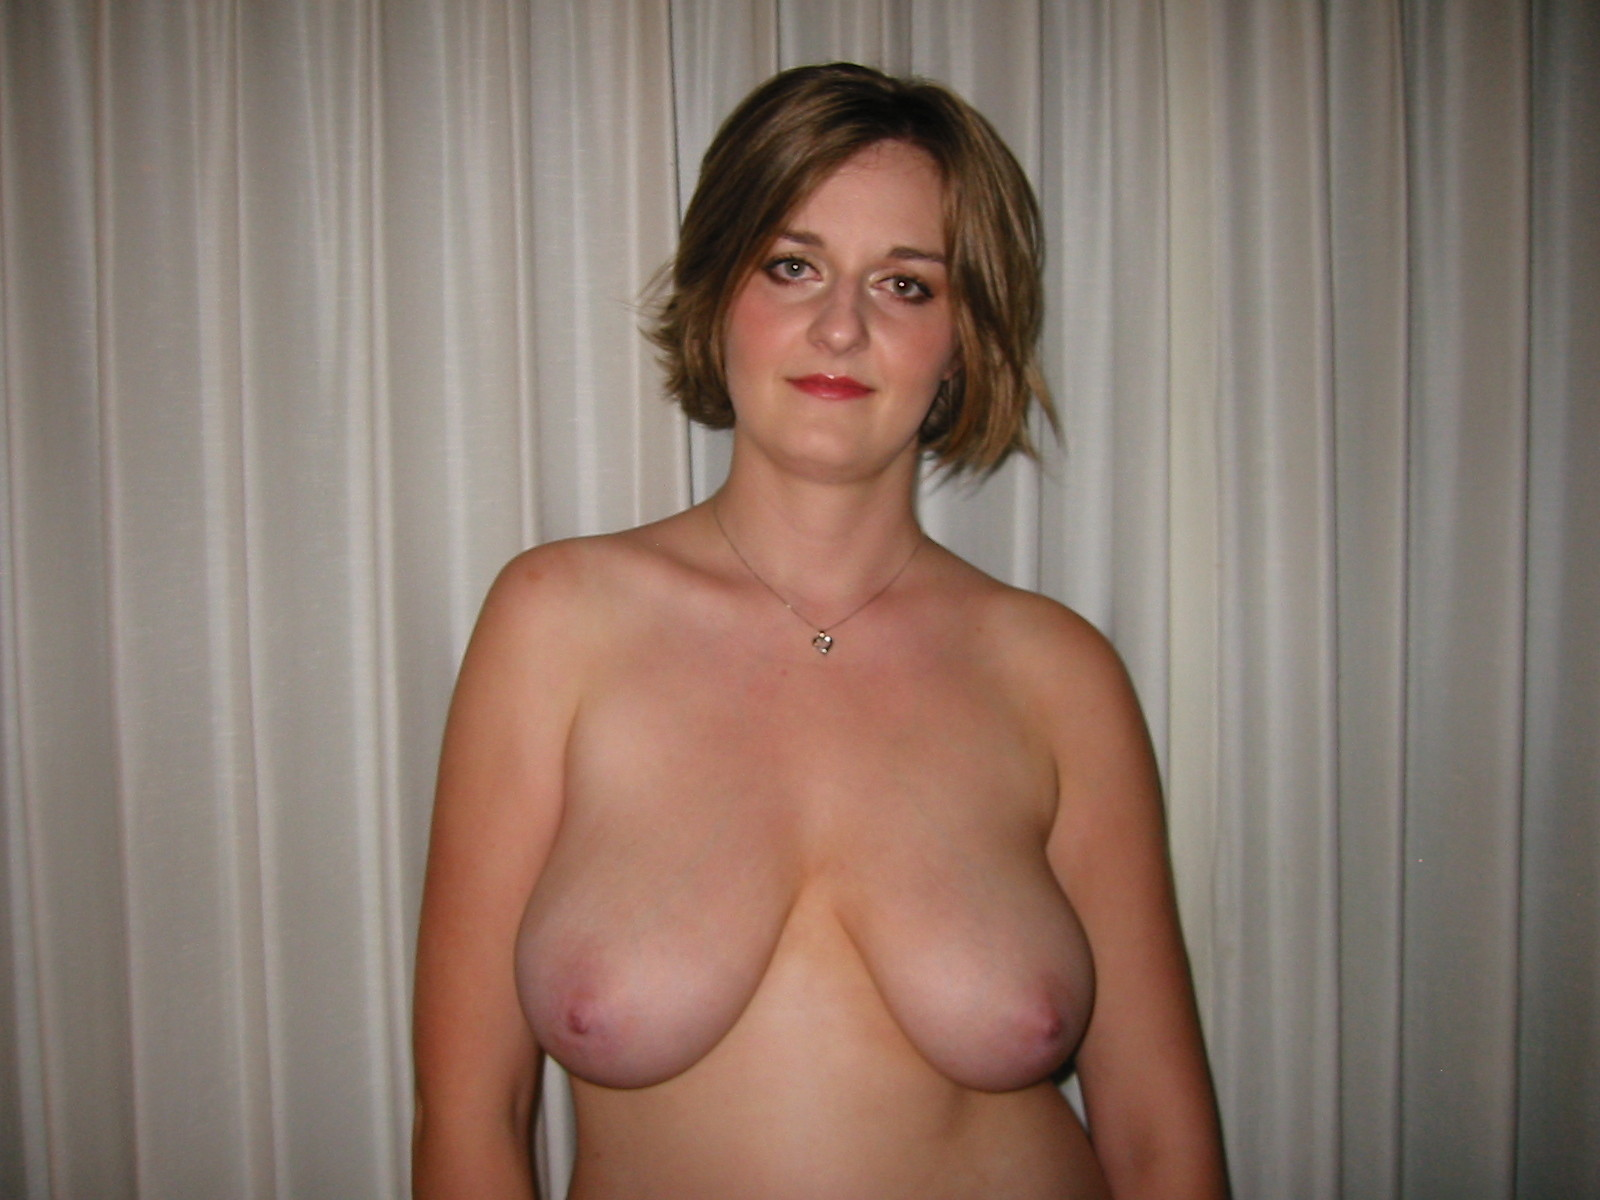 Milf Breasts 57